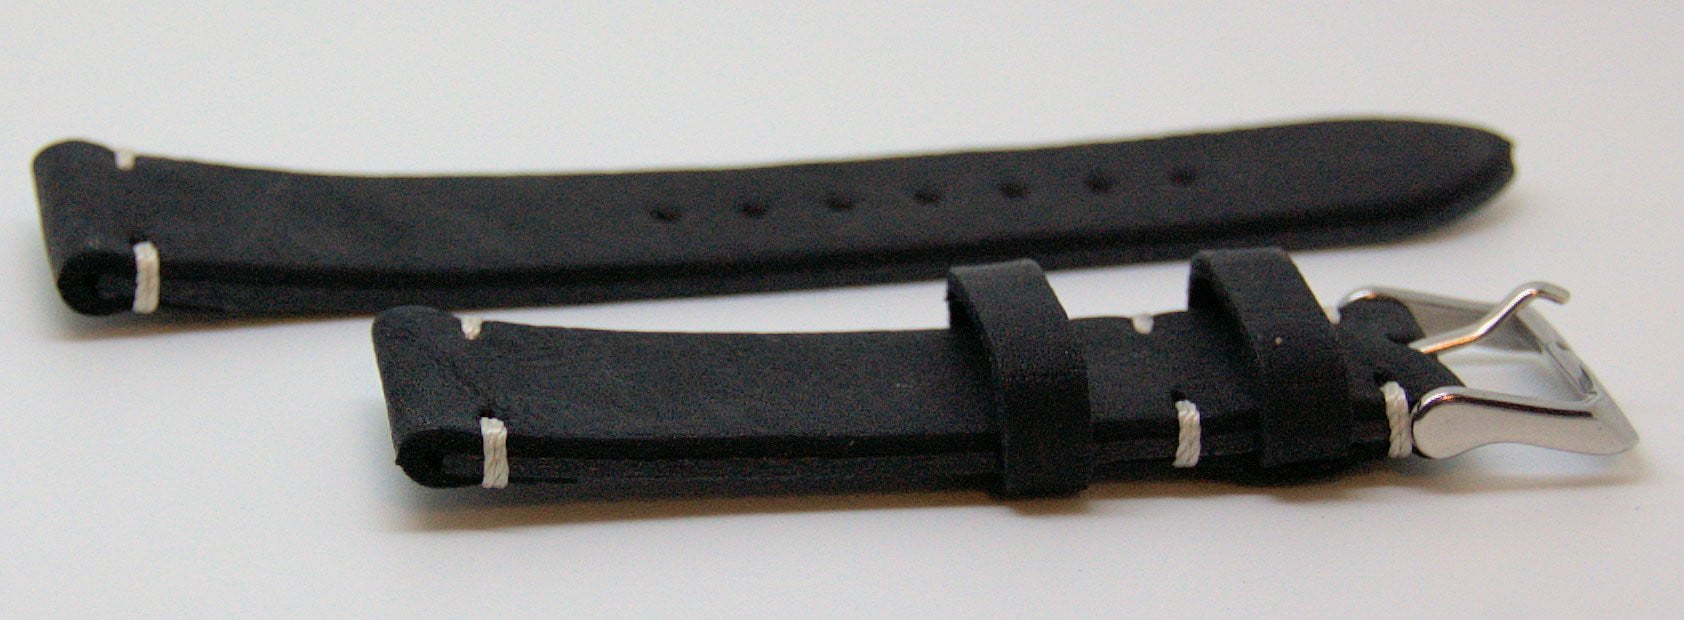 Italian Made 22mm Tapered Nubuck Leather Watch Strap Black